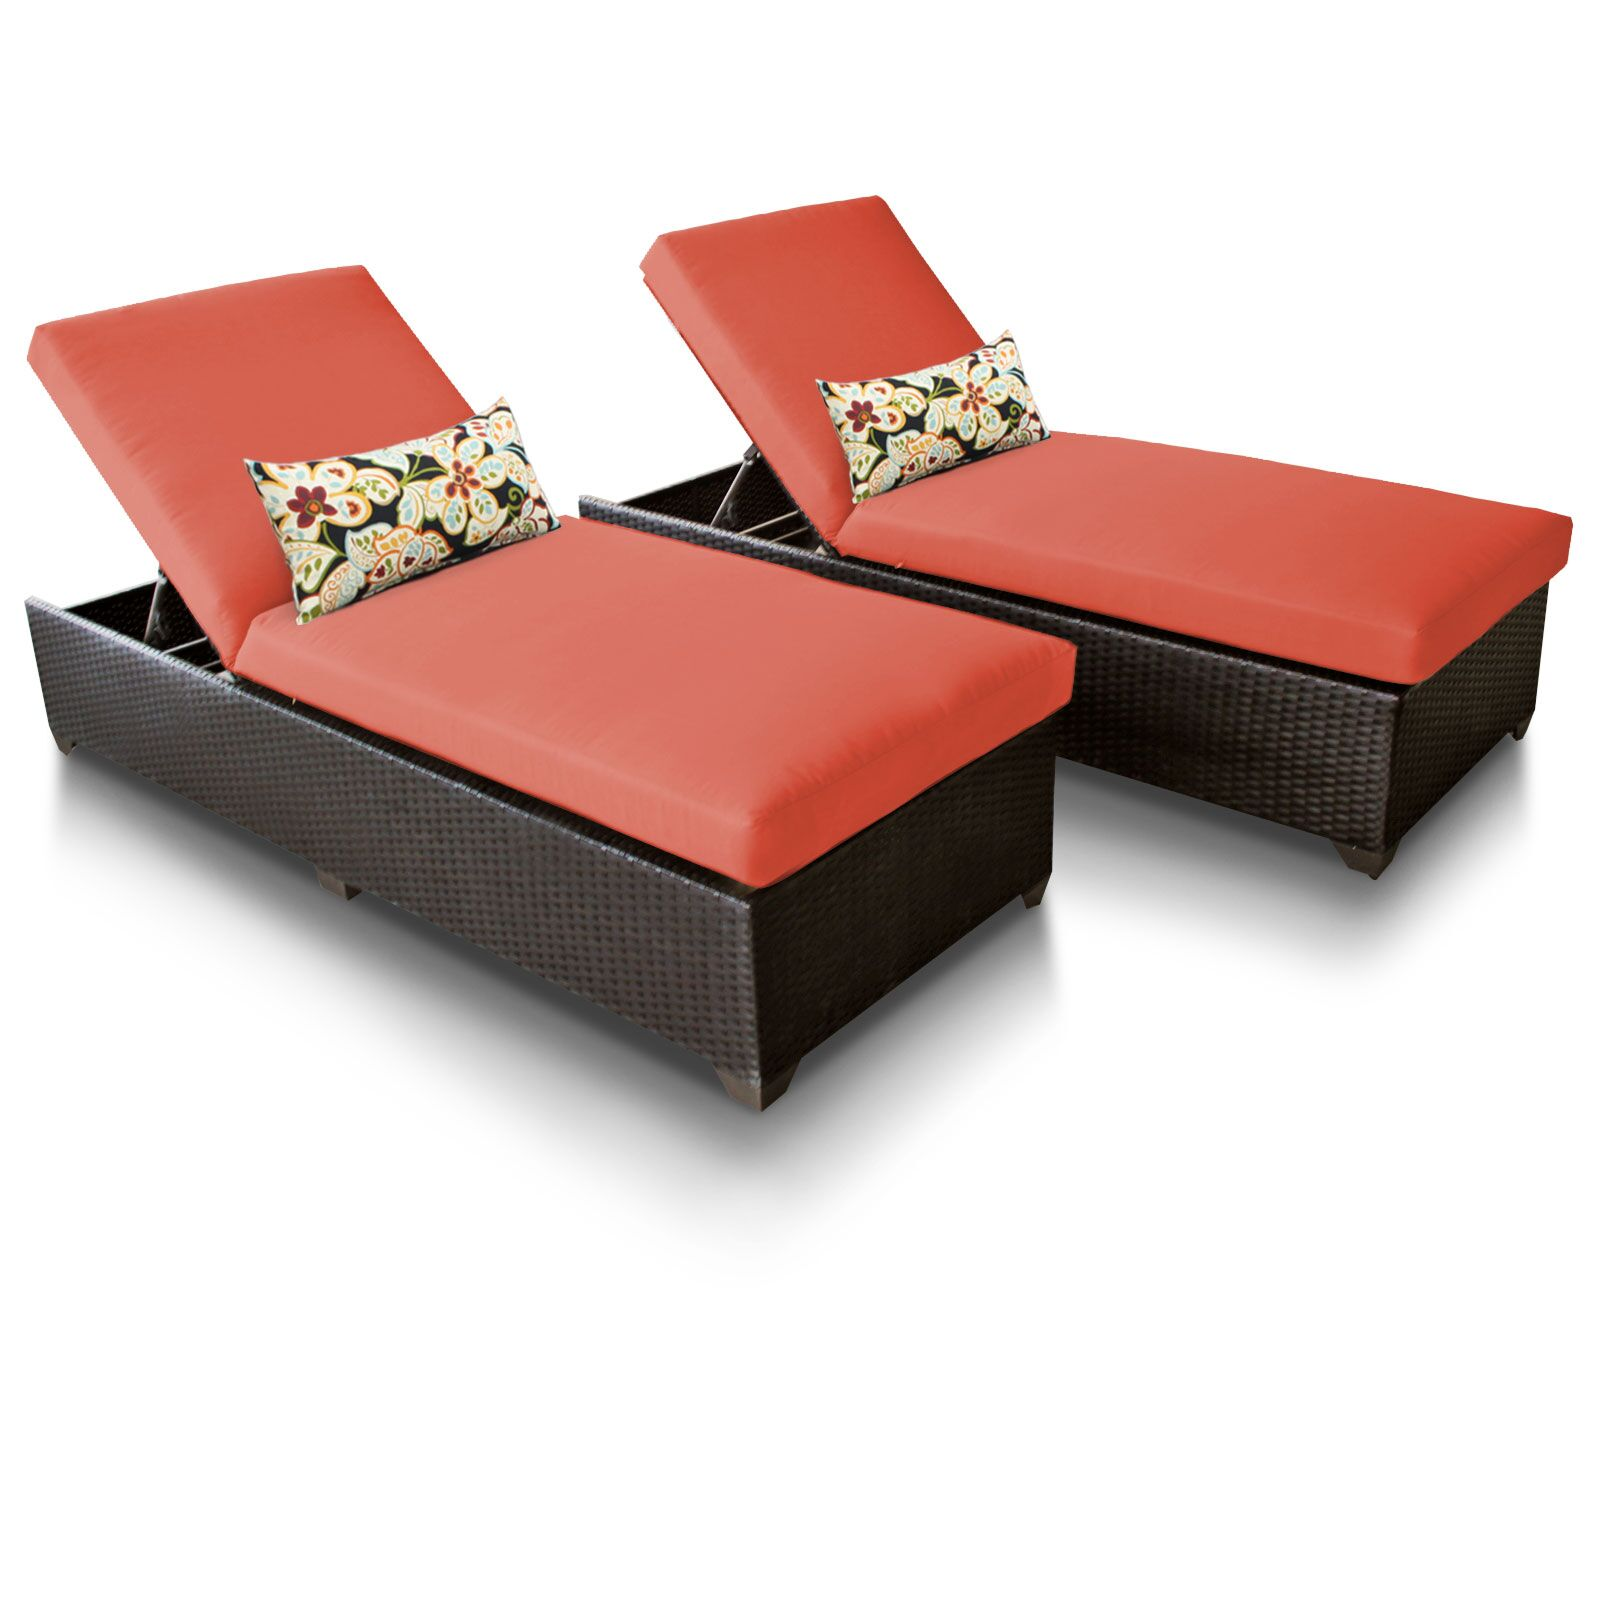 Classic Chaise Lounge with Cushion Color: Tangerine